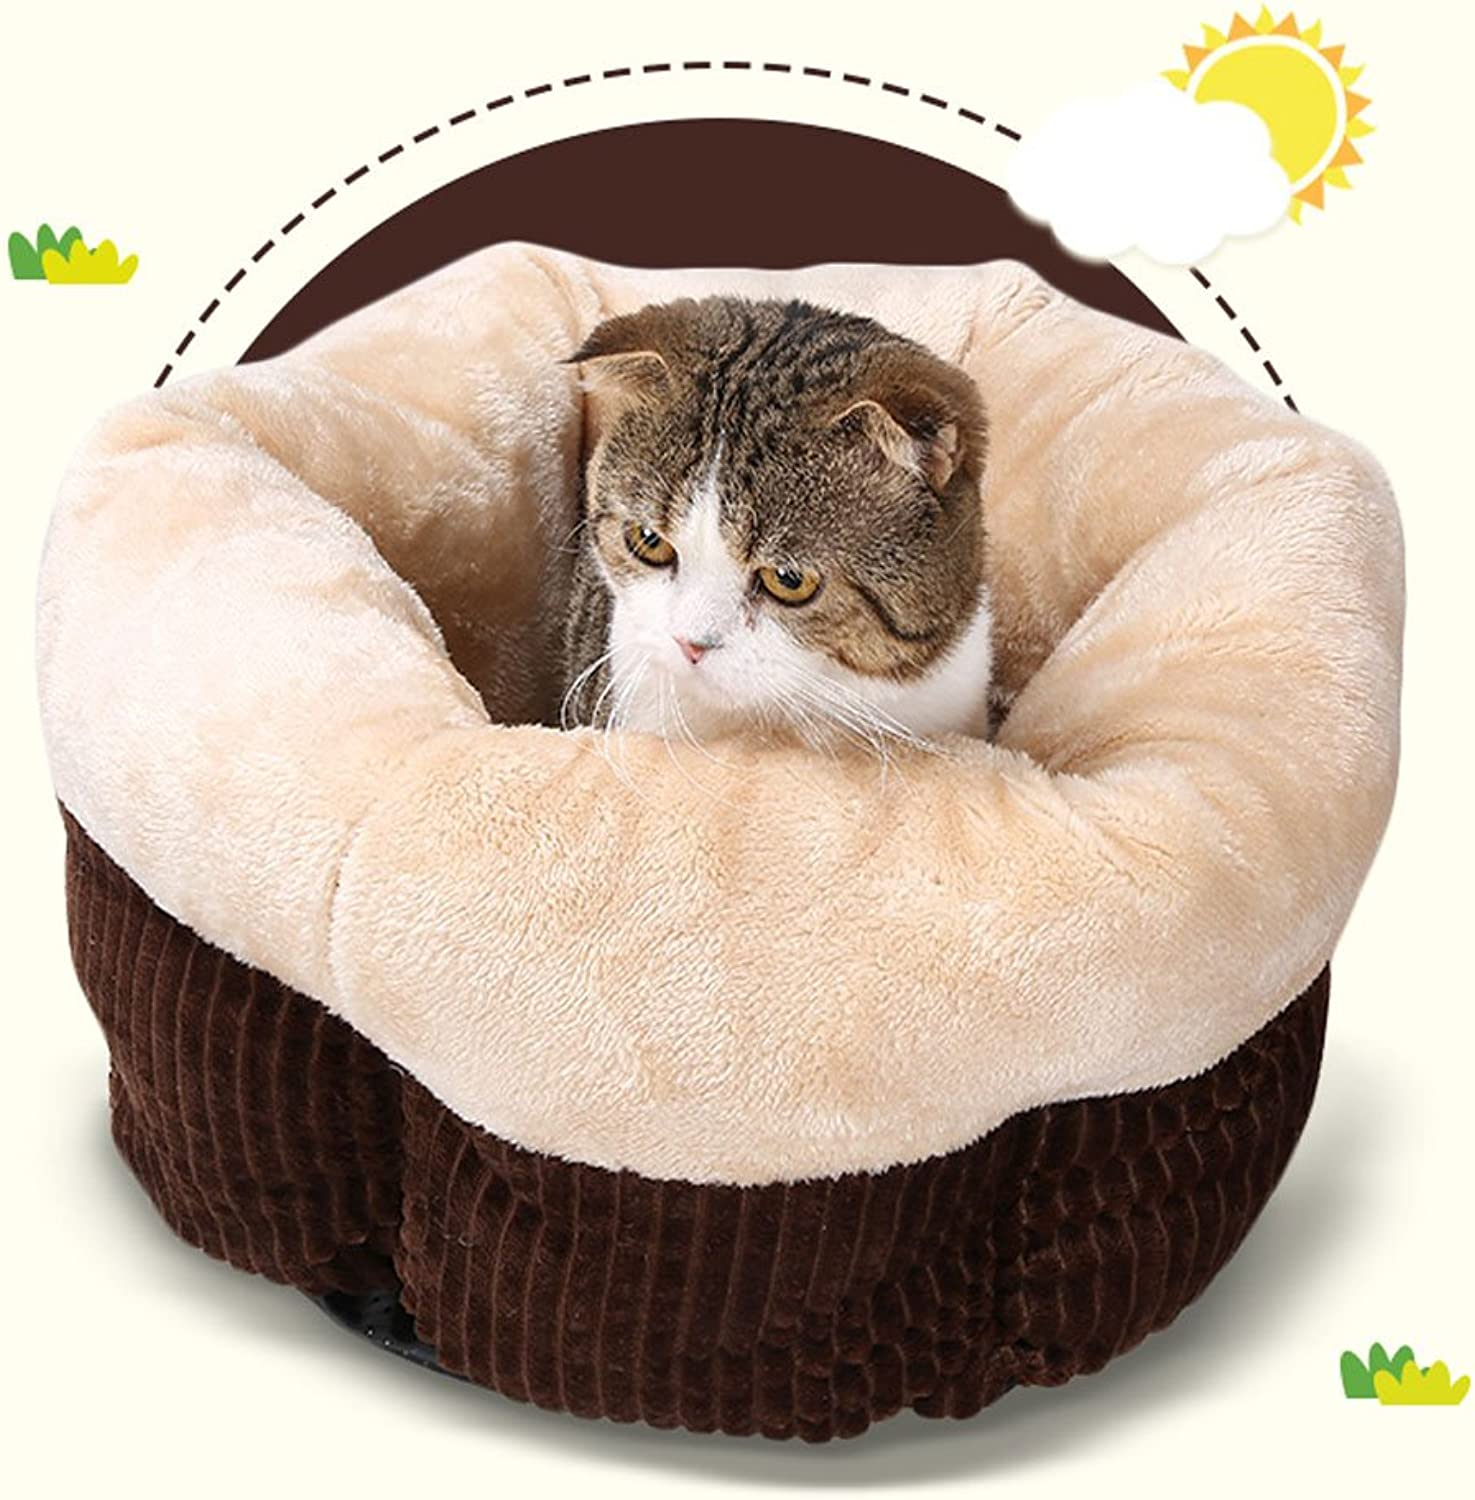 Pet CaveTent Bed for Dogs and Cats Pet Bed for Dogs & CatsPet Supplies Padded Pet Bolster Warming Beds Cat Cage (color   7)